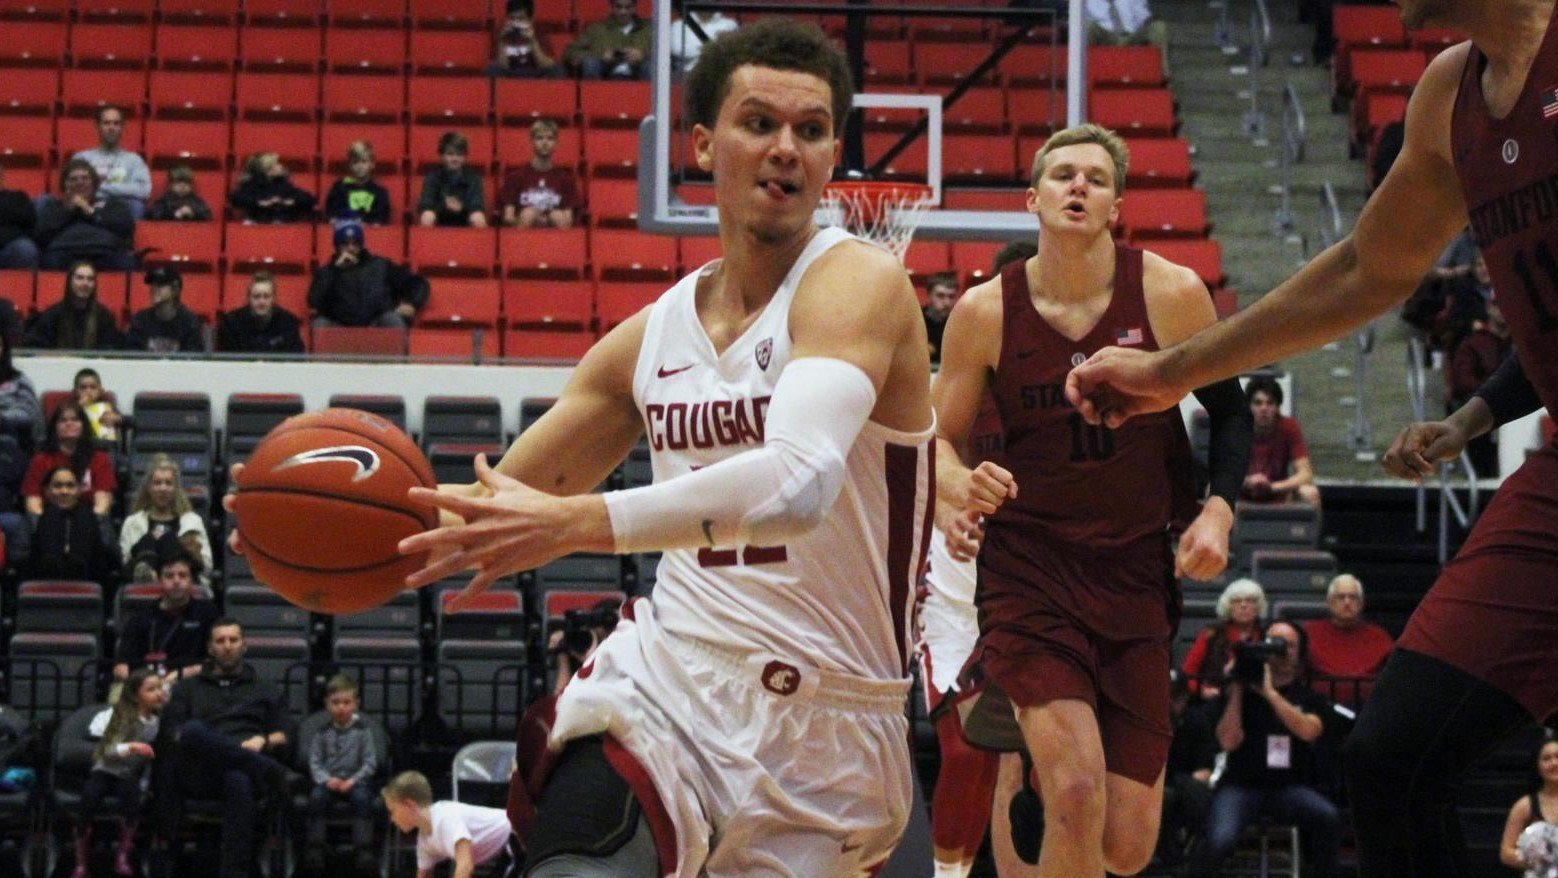 Cougars drop 4th straight conference game against Stanford, 79-7